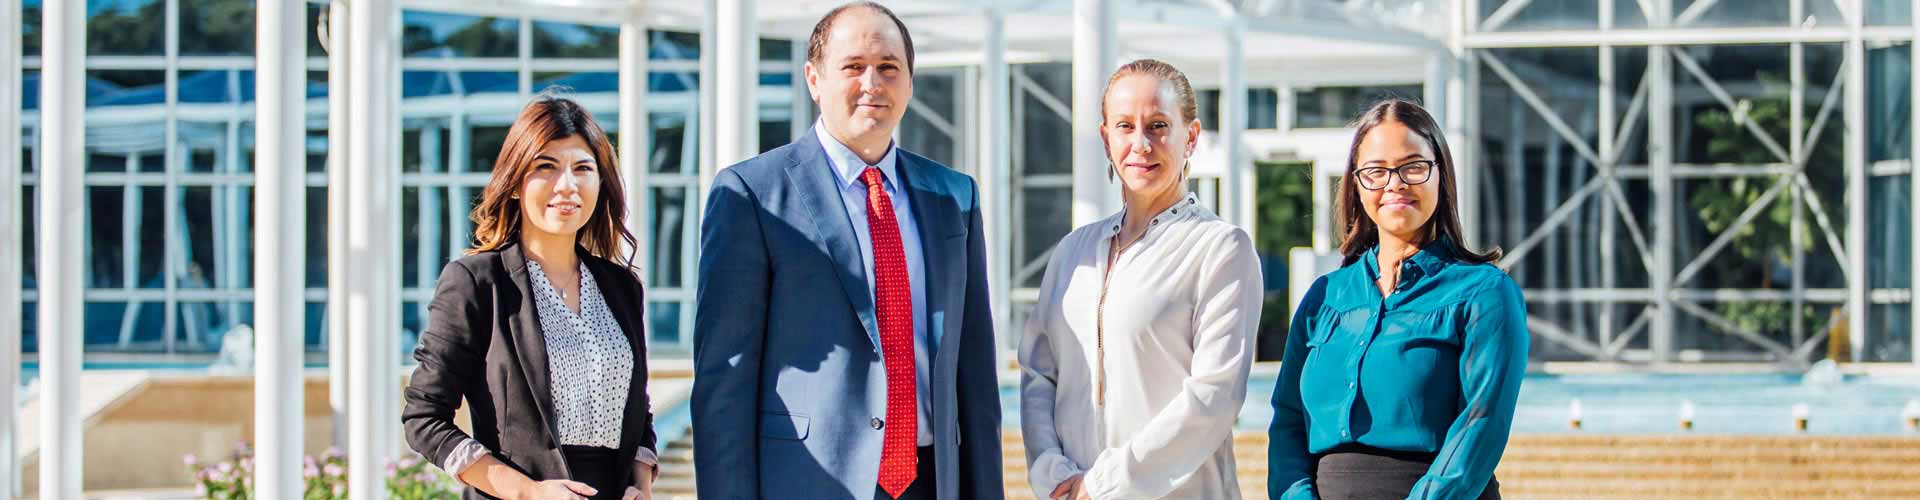 Lake Worth Chapter 7 Bankruptcy Attorneys - Stiberman Law Firm